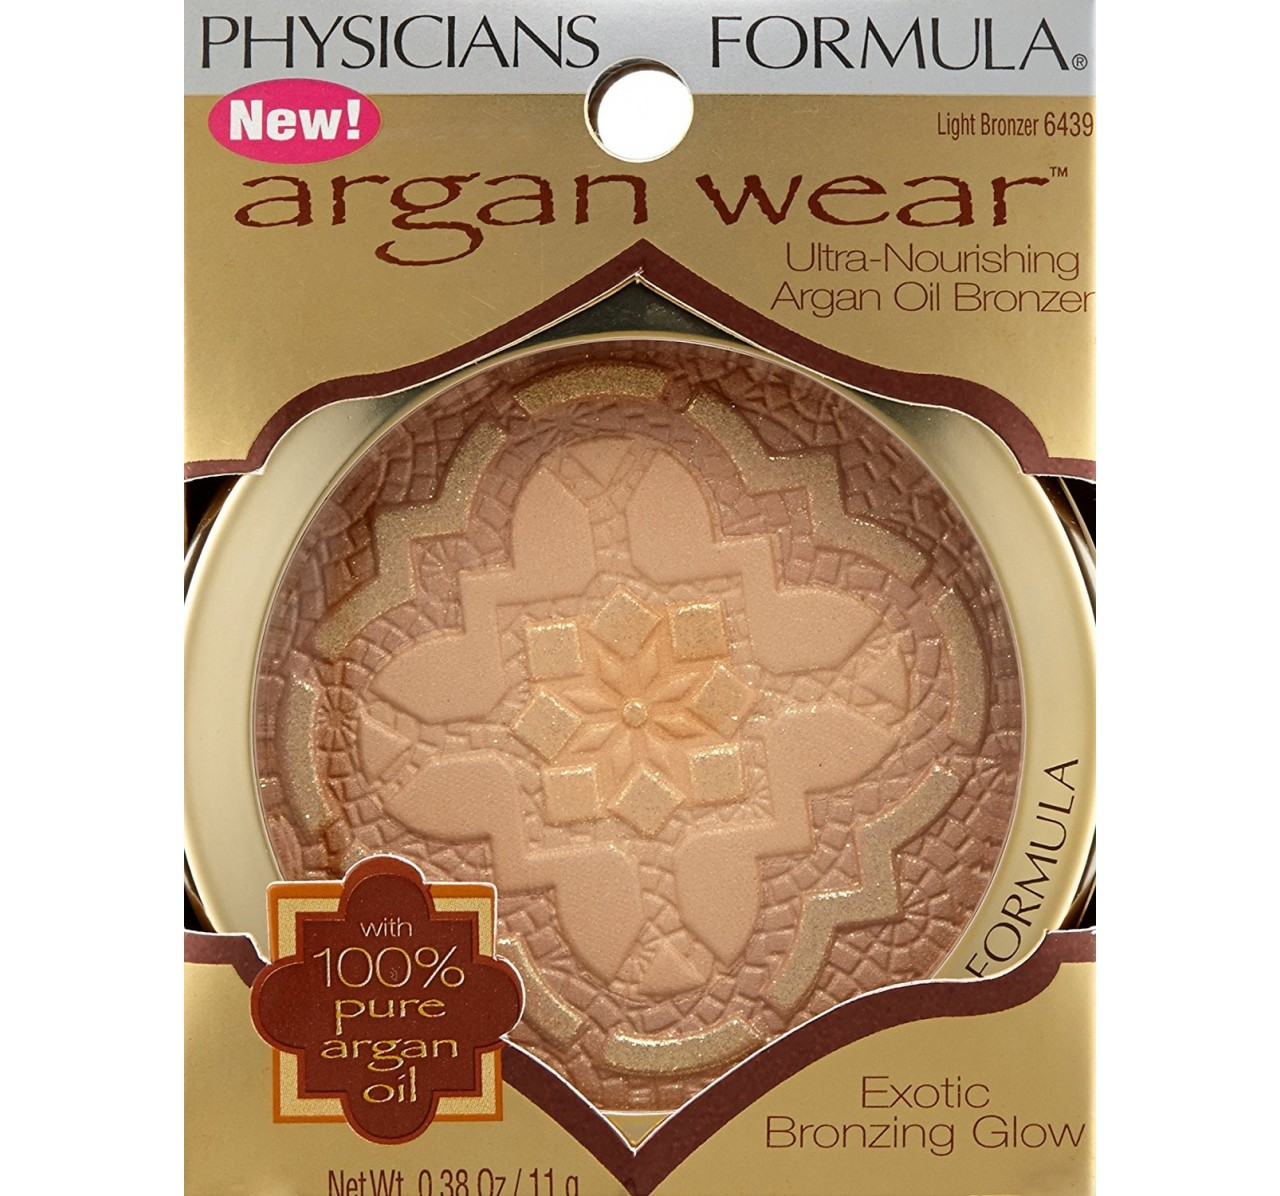 Physicians Formula Argan Oil